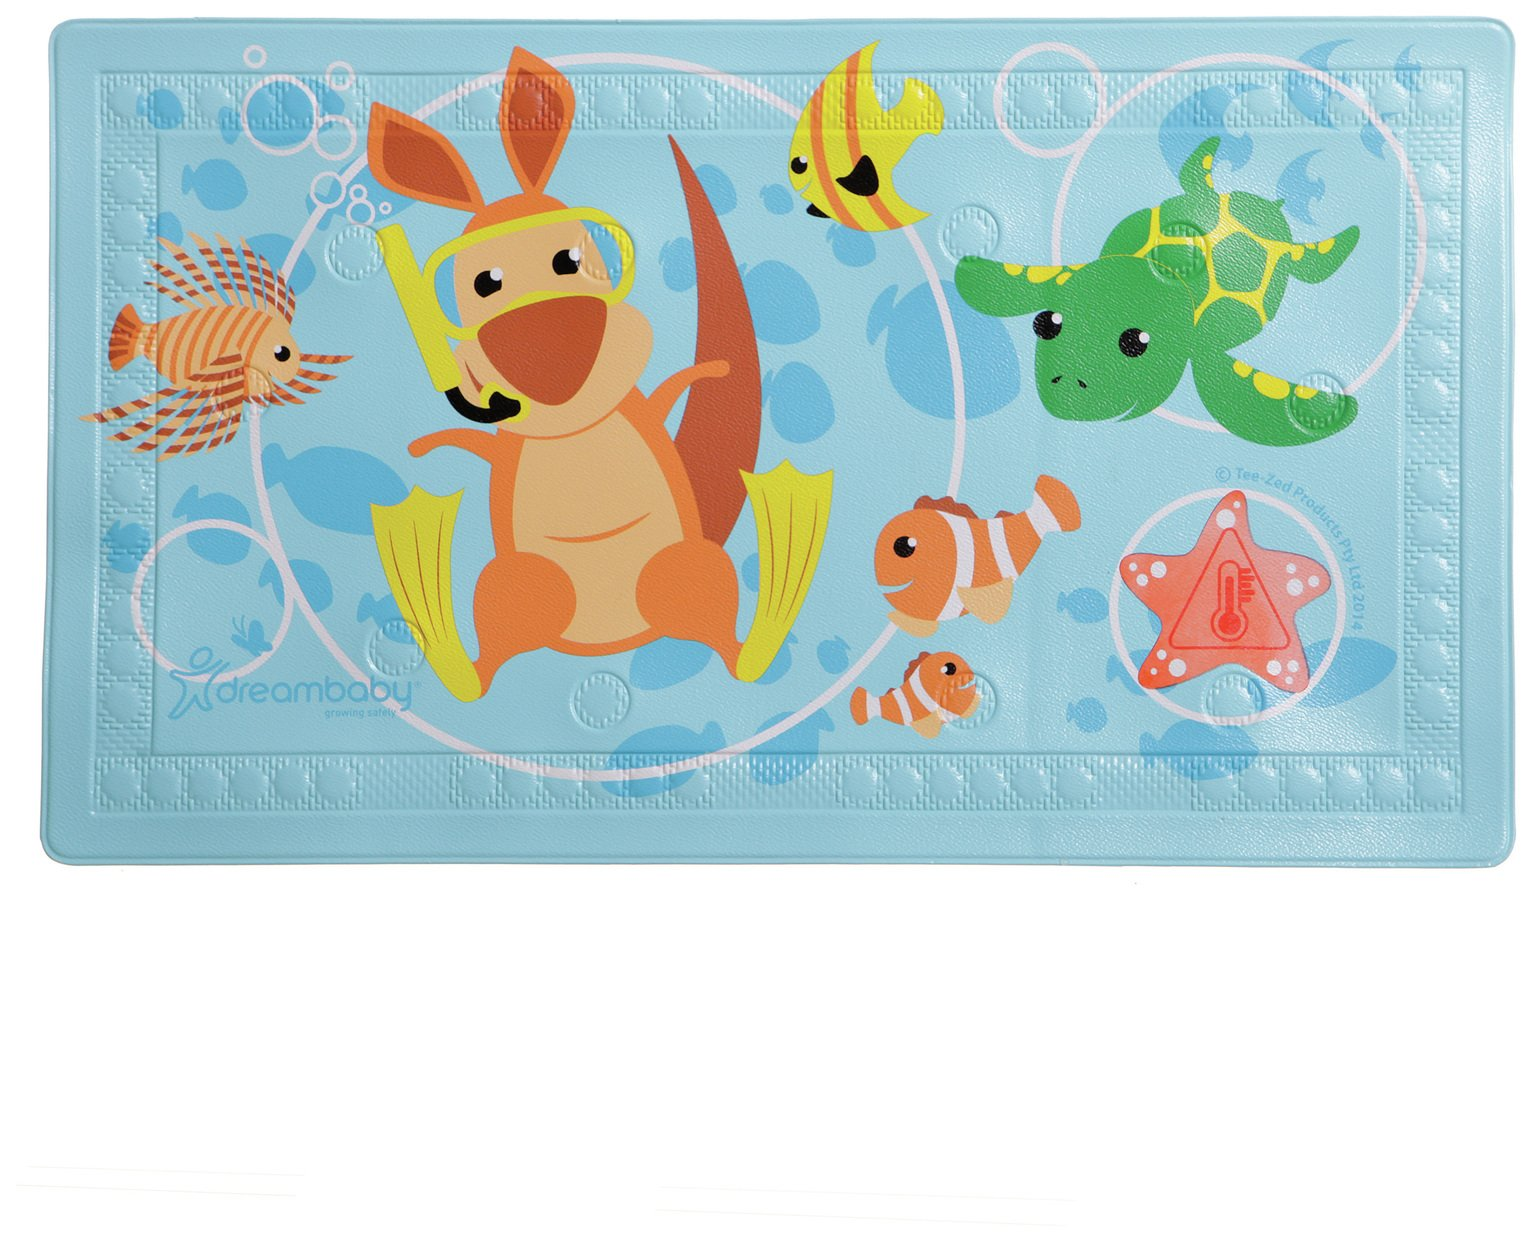 Image of Dreambaby Anti Slip Bath Mat.